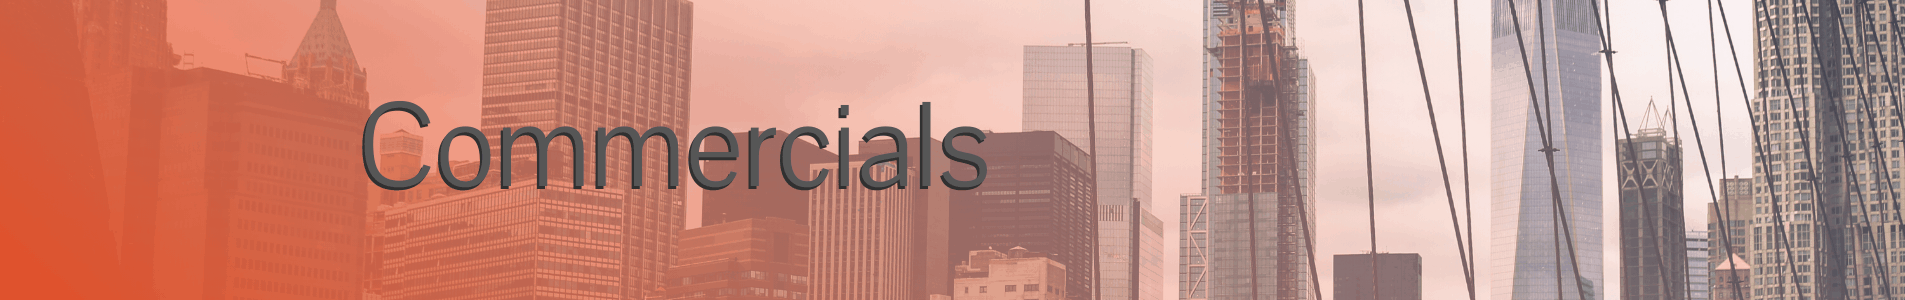 VR Company Commercials Banner